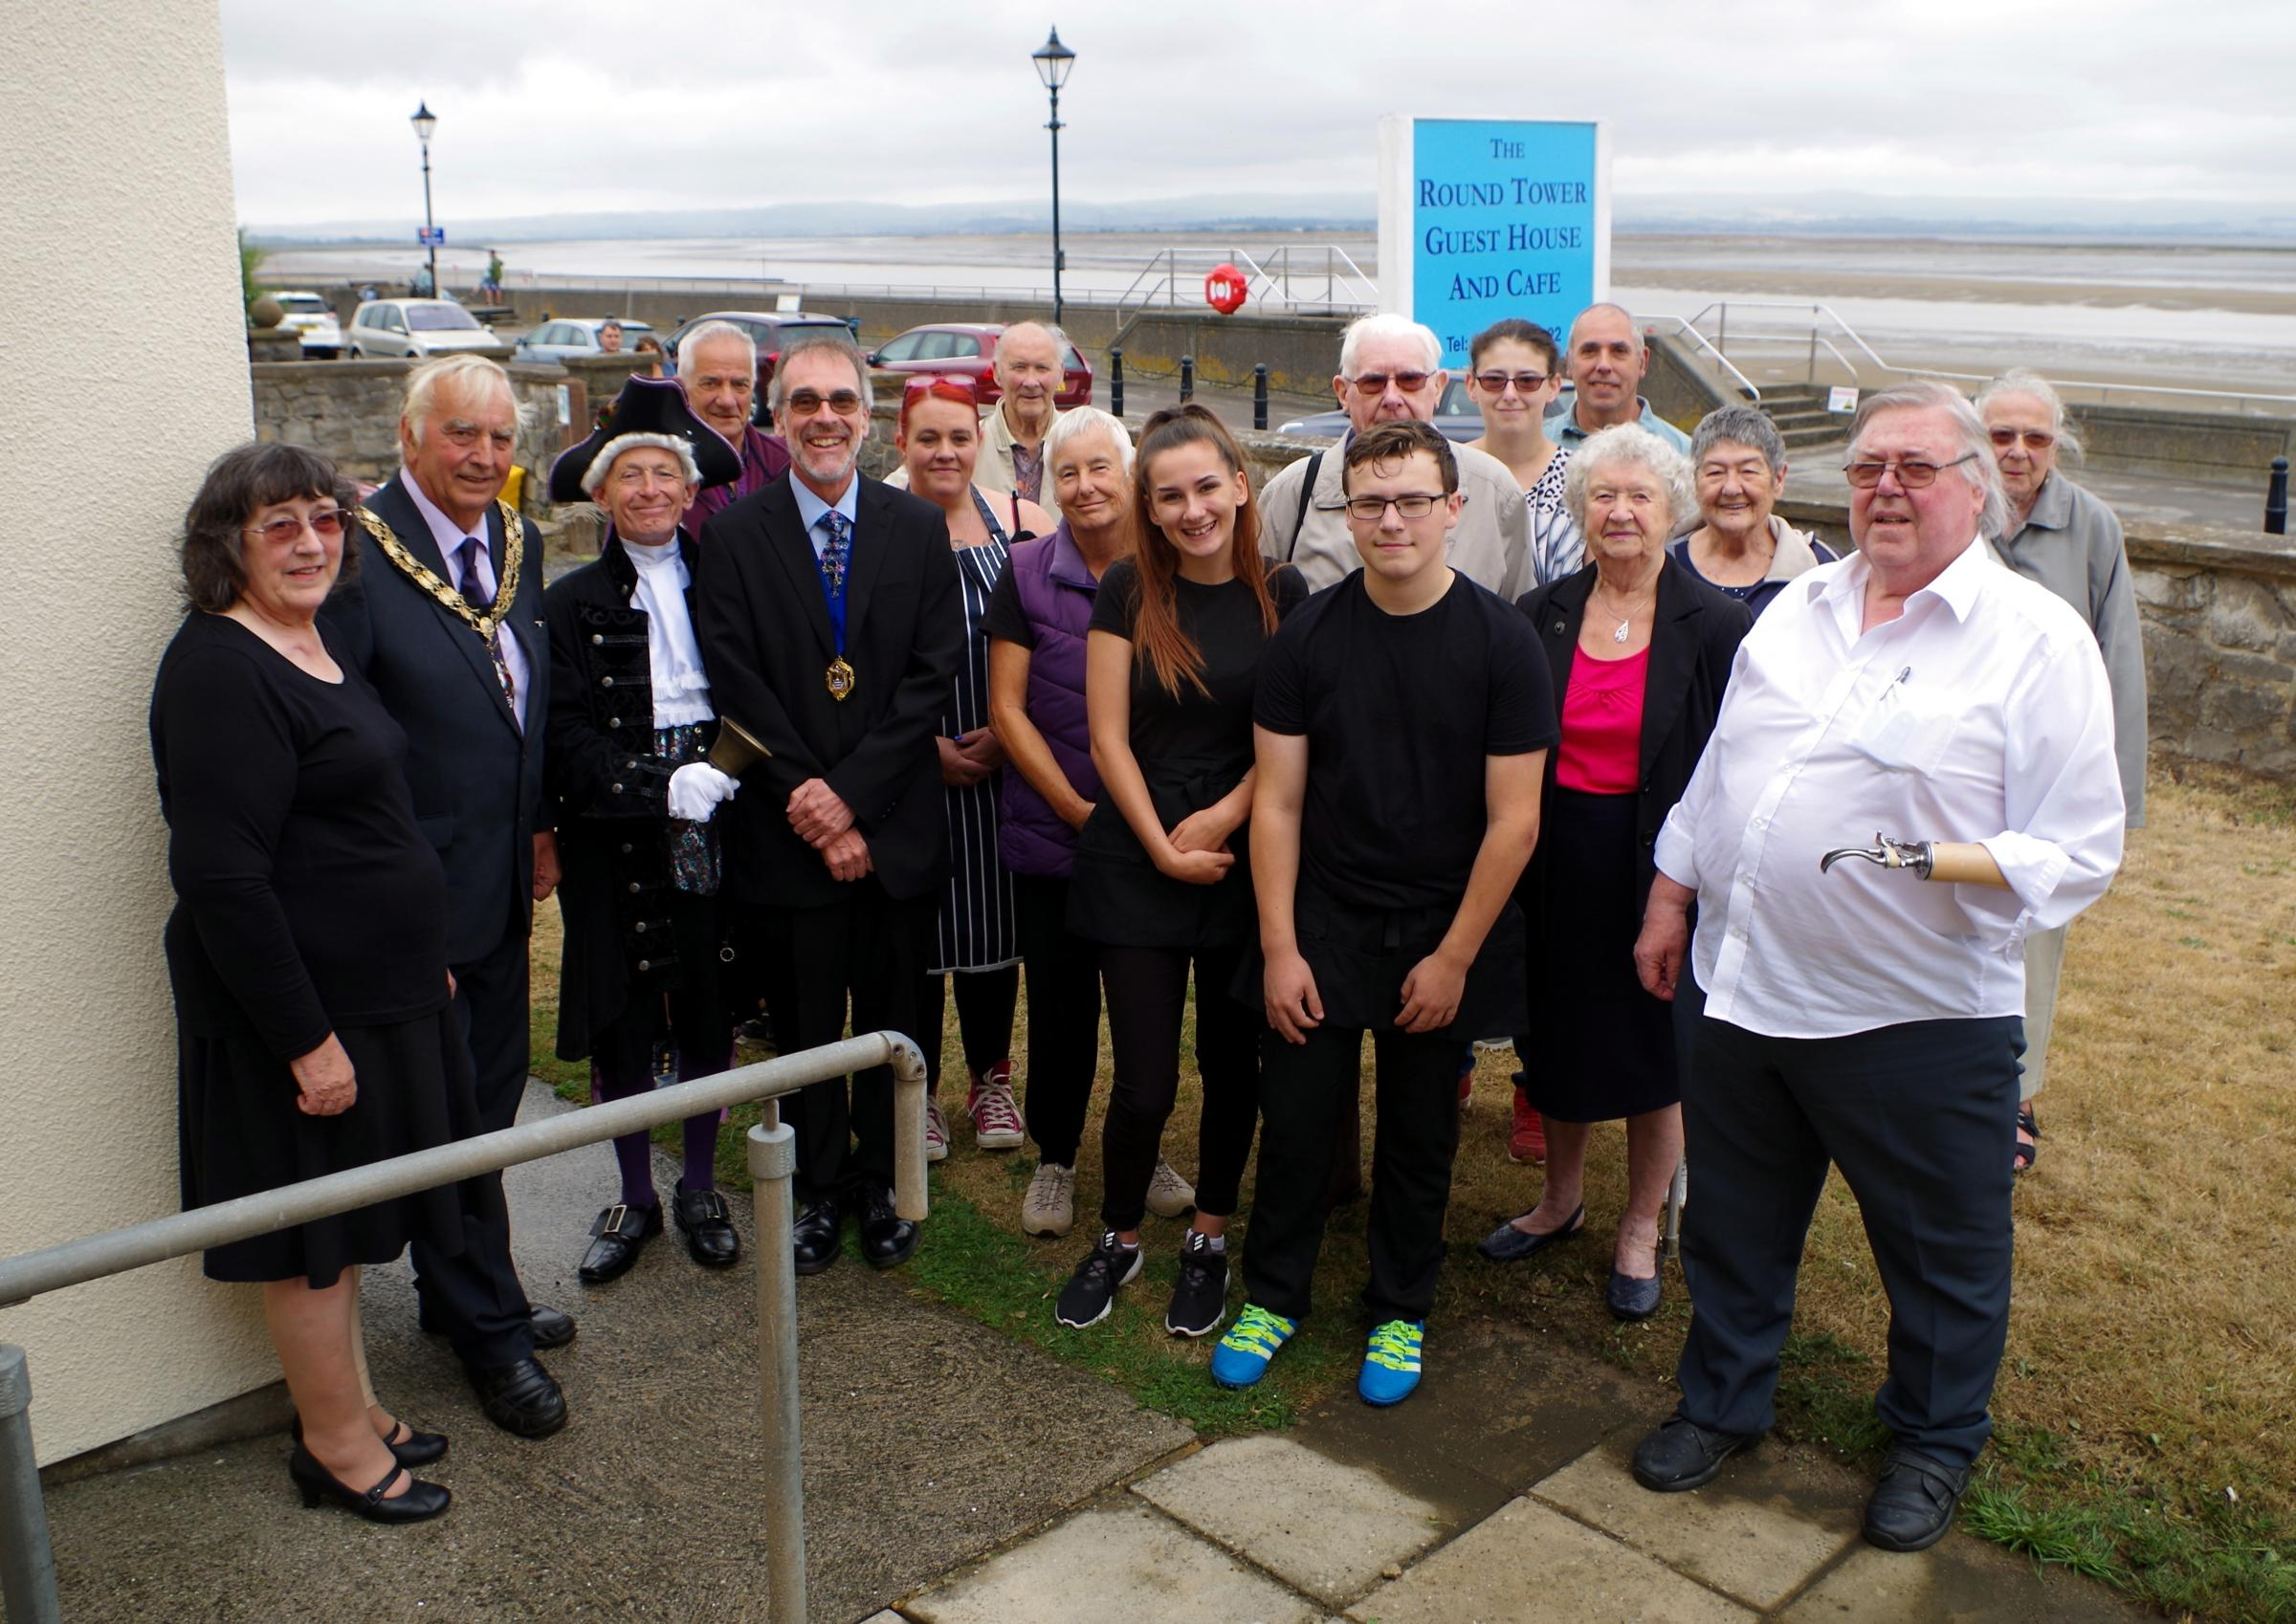 OPEN: Pheobe Pearce and Stuart Pearce, owners of The Round Tower Guest House with Cllr Bill Hancock, mayor of Burnham and HIghbridge and residents at tbe cafe opening